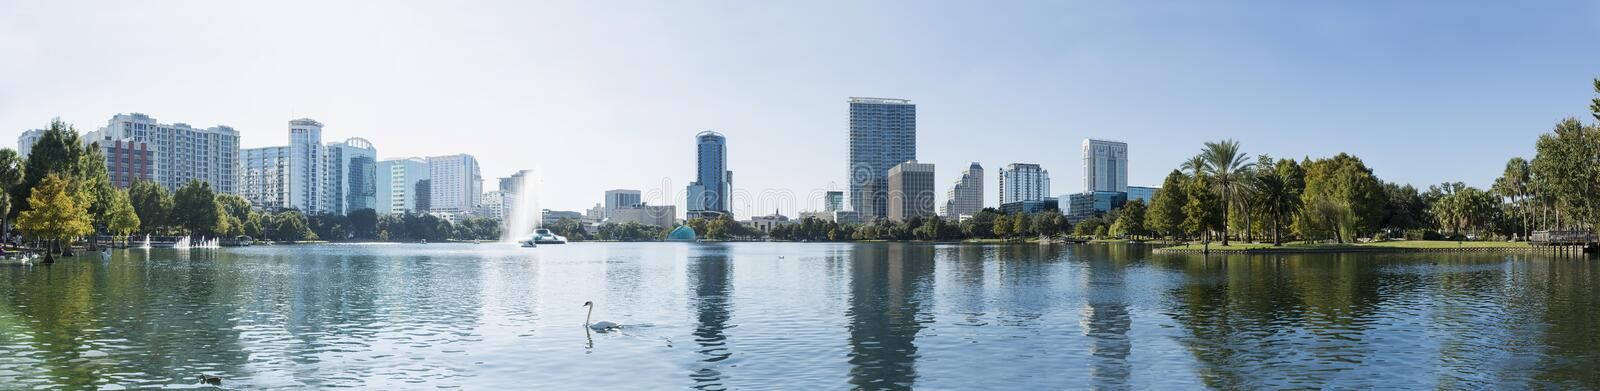 Orlando downtown Lake Eola panorama with urban buildings and reflection royalty free stock images